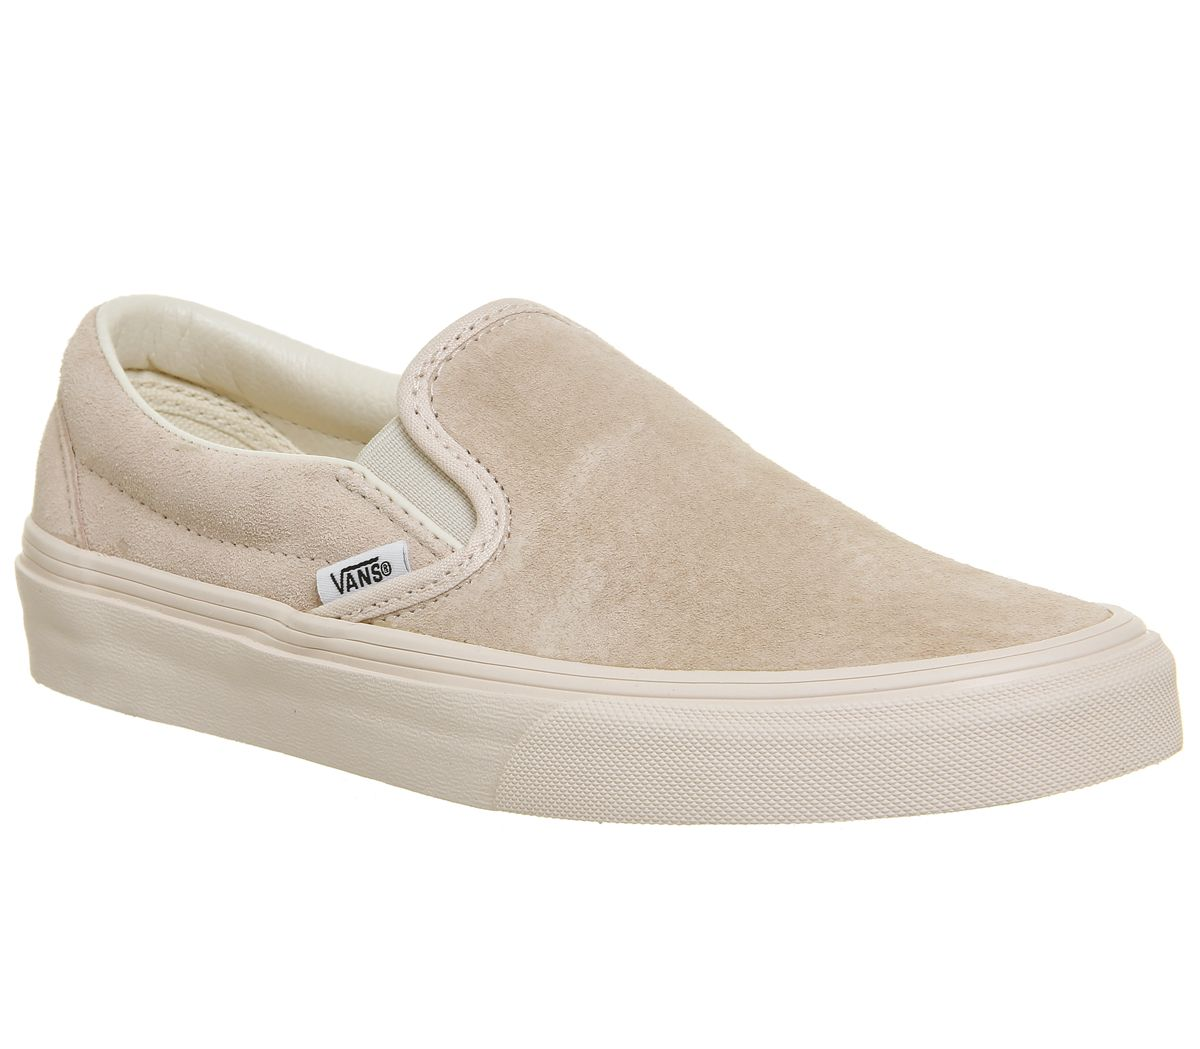 1ad37436b2 Vans Vans Classic Slip On Trainers Silver Peony Eggnog Exclusive ...